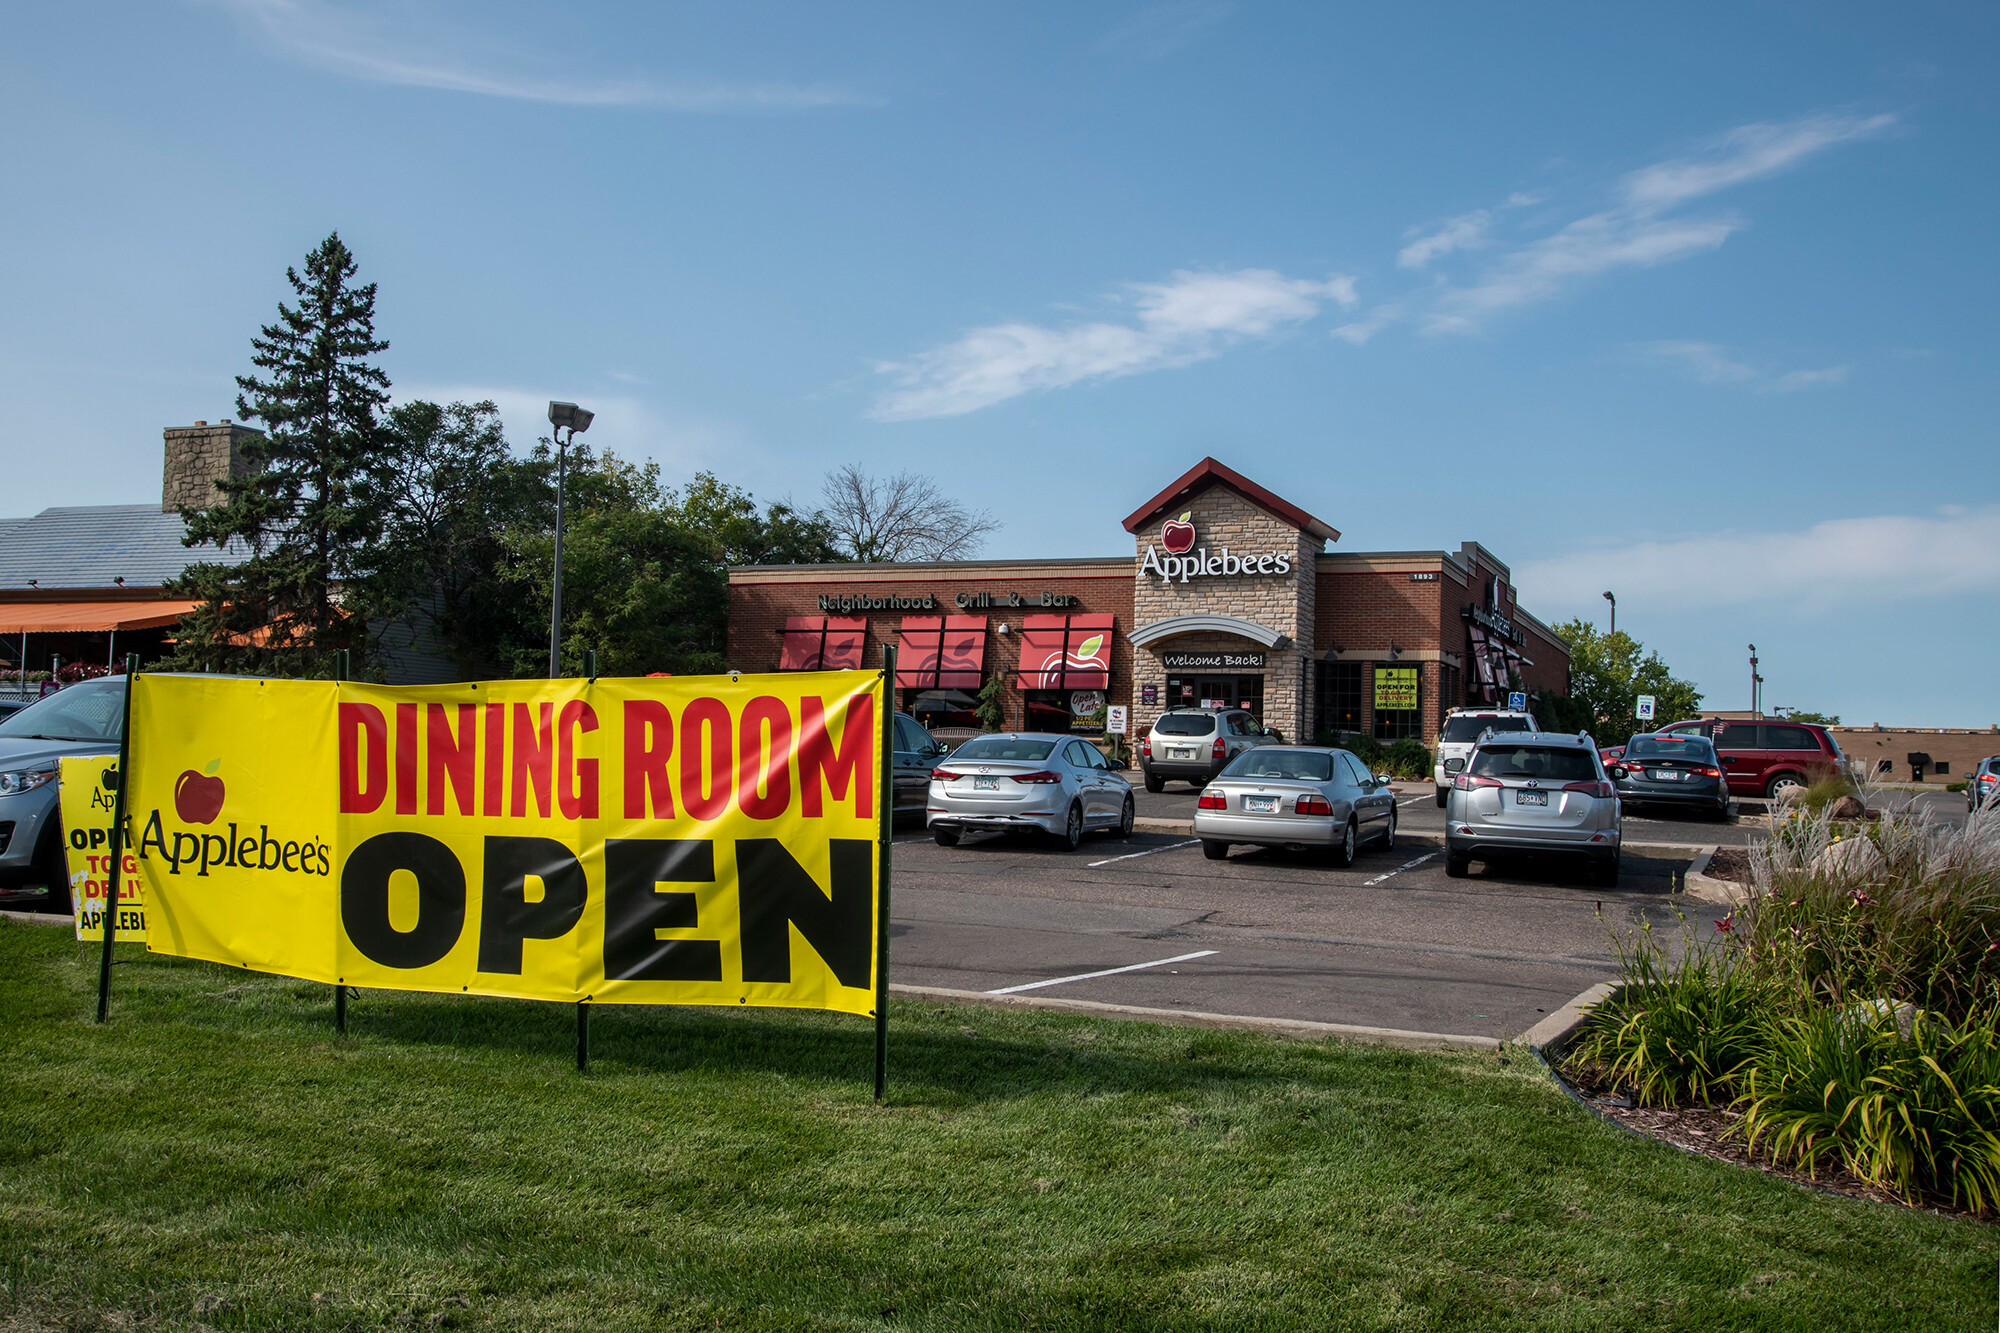 People are flocking to Applebee's. This popular song is one reason why